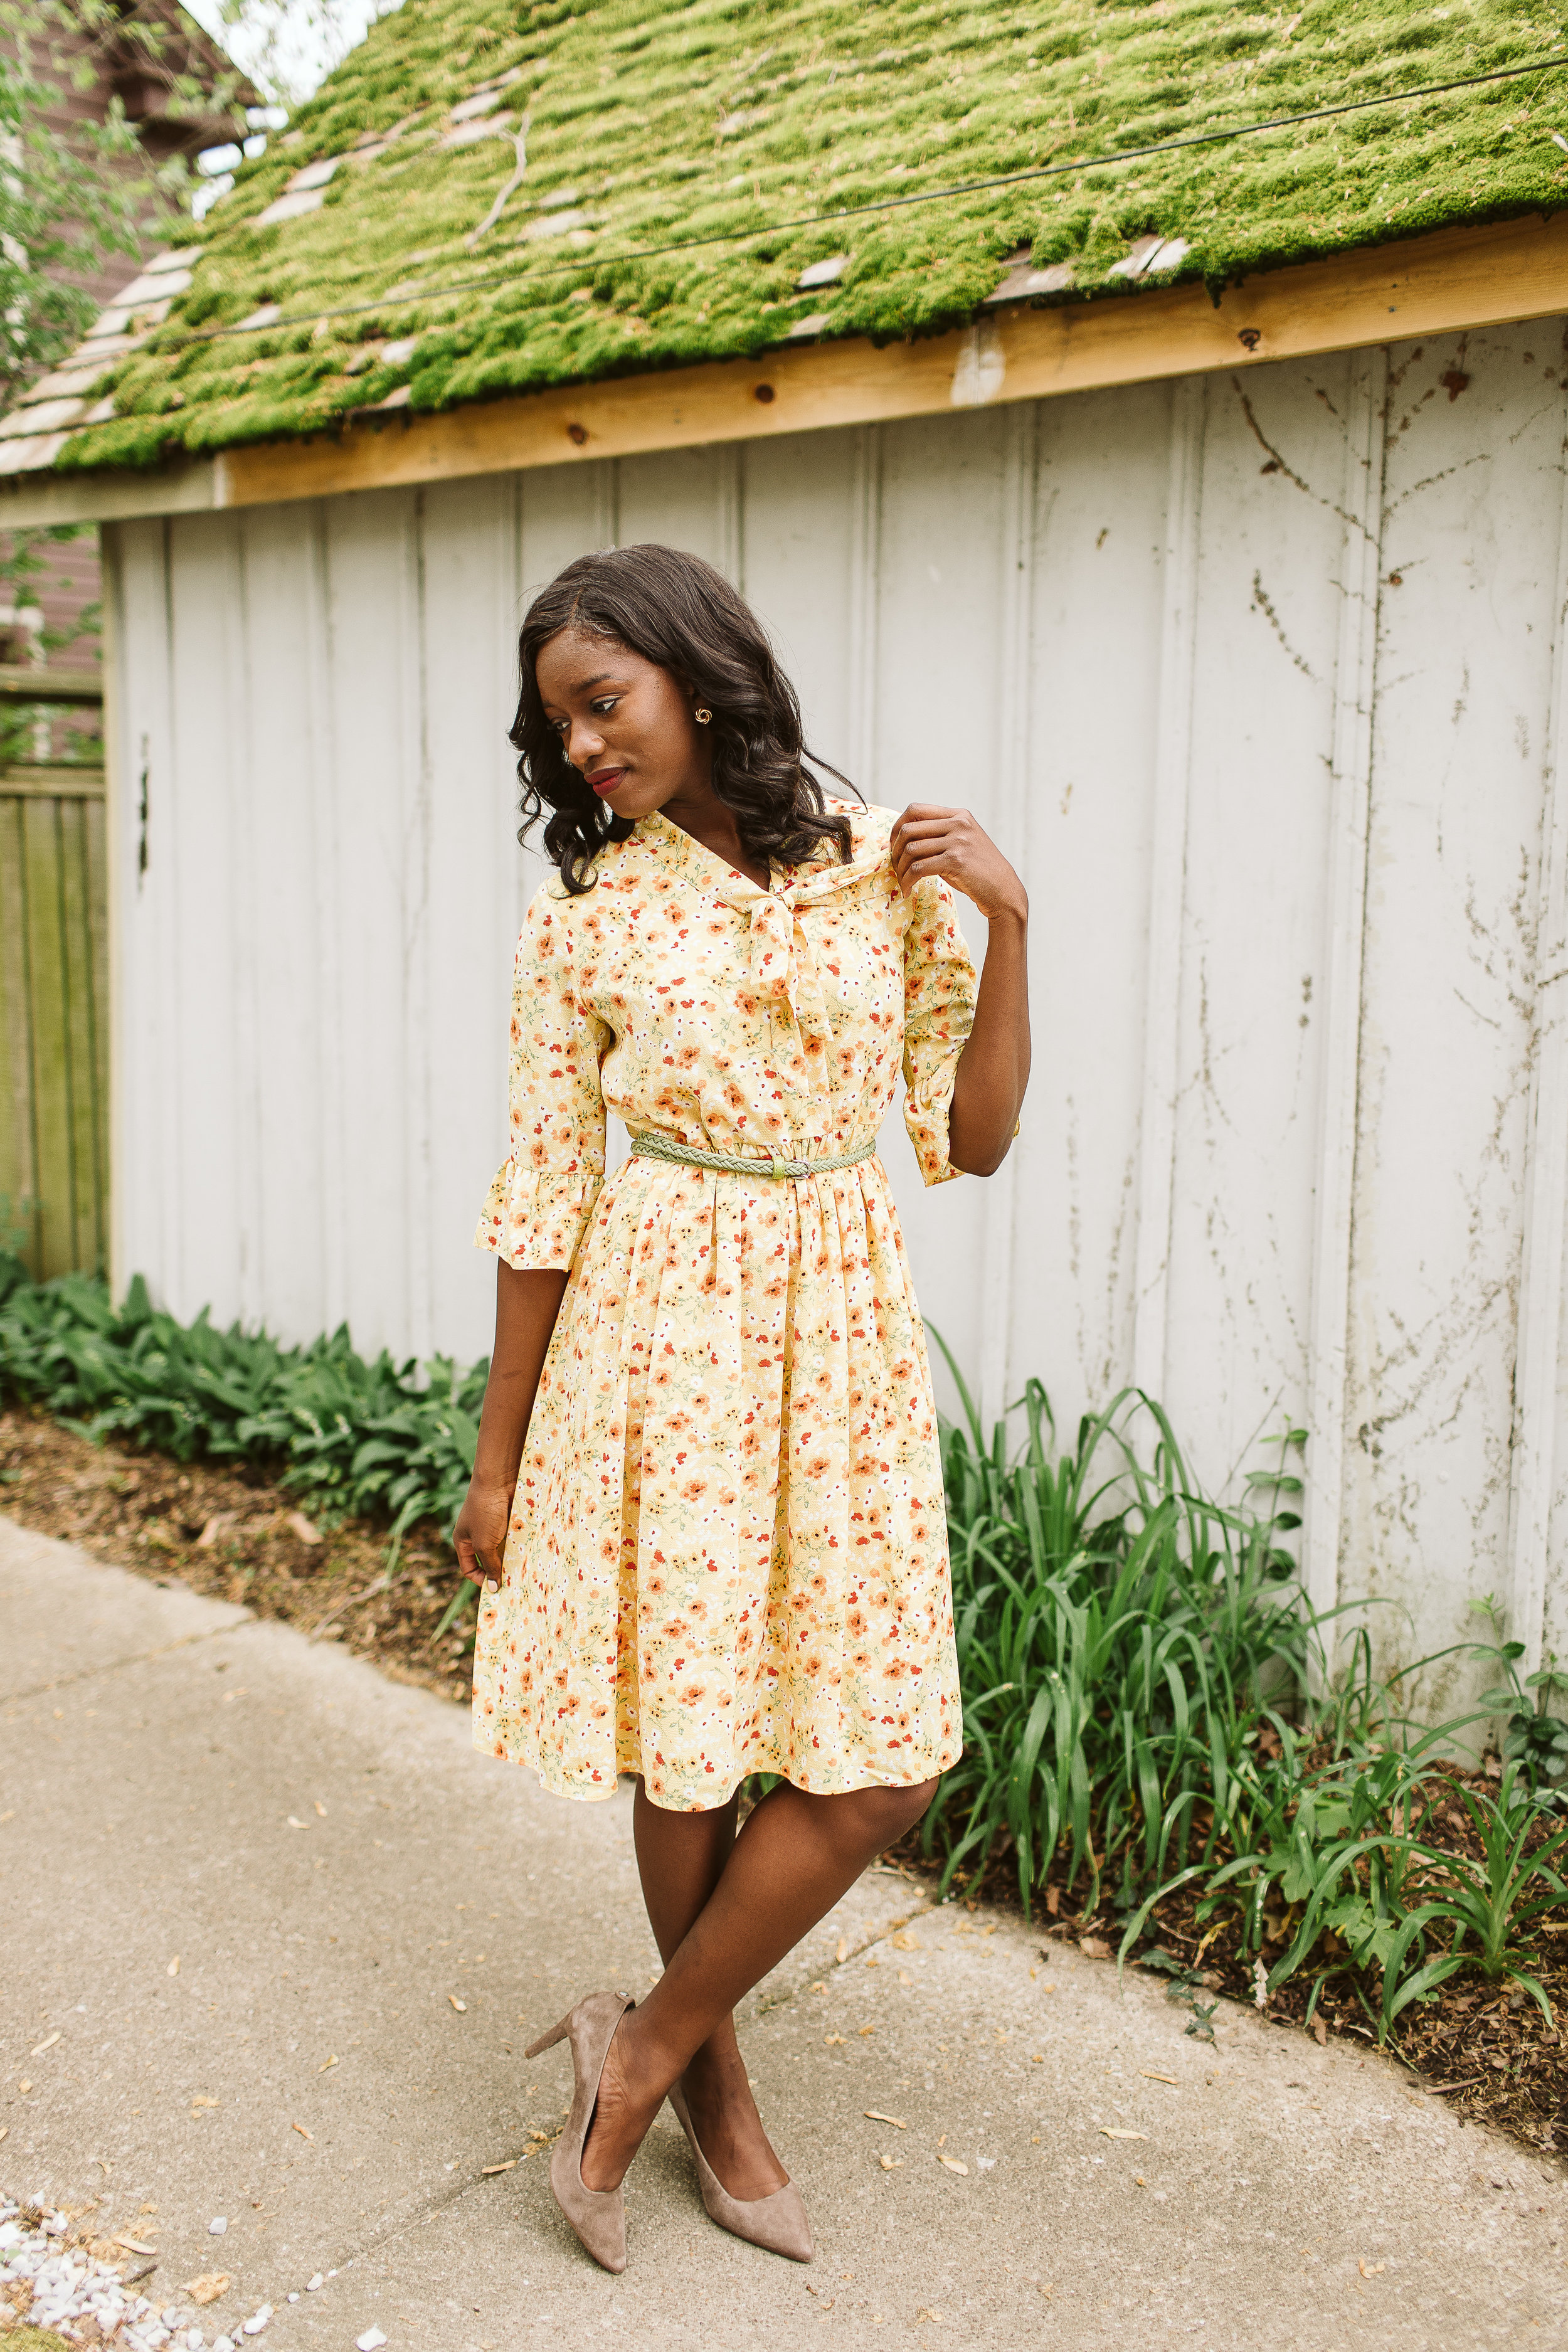 FLORAL - We can't forget the sunshine classic: floral. Try less obvious floral prints like the Mustard Babydoll Dress, where the minimal nature of the floral makes the look more chic.Right: Mustard Babydoll Dress, Simple Extravagance, $35.